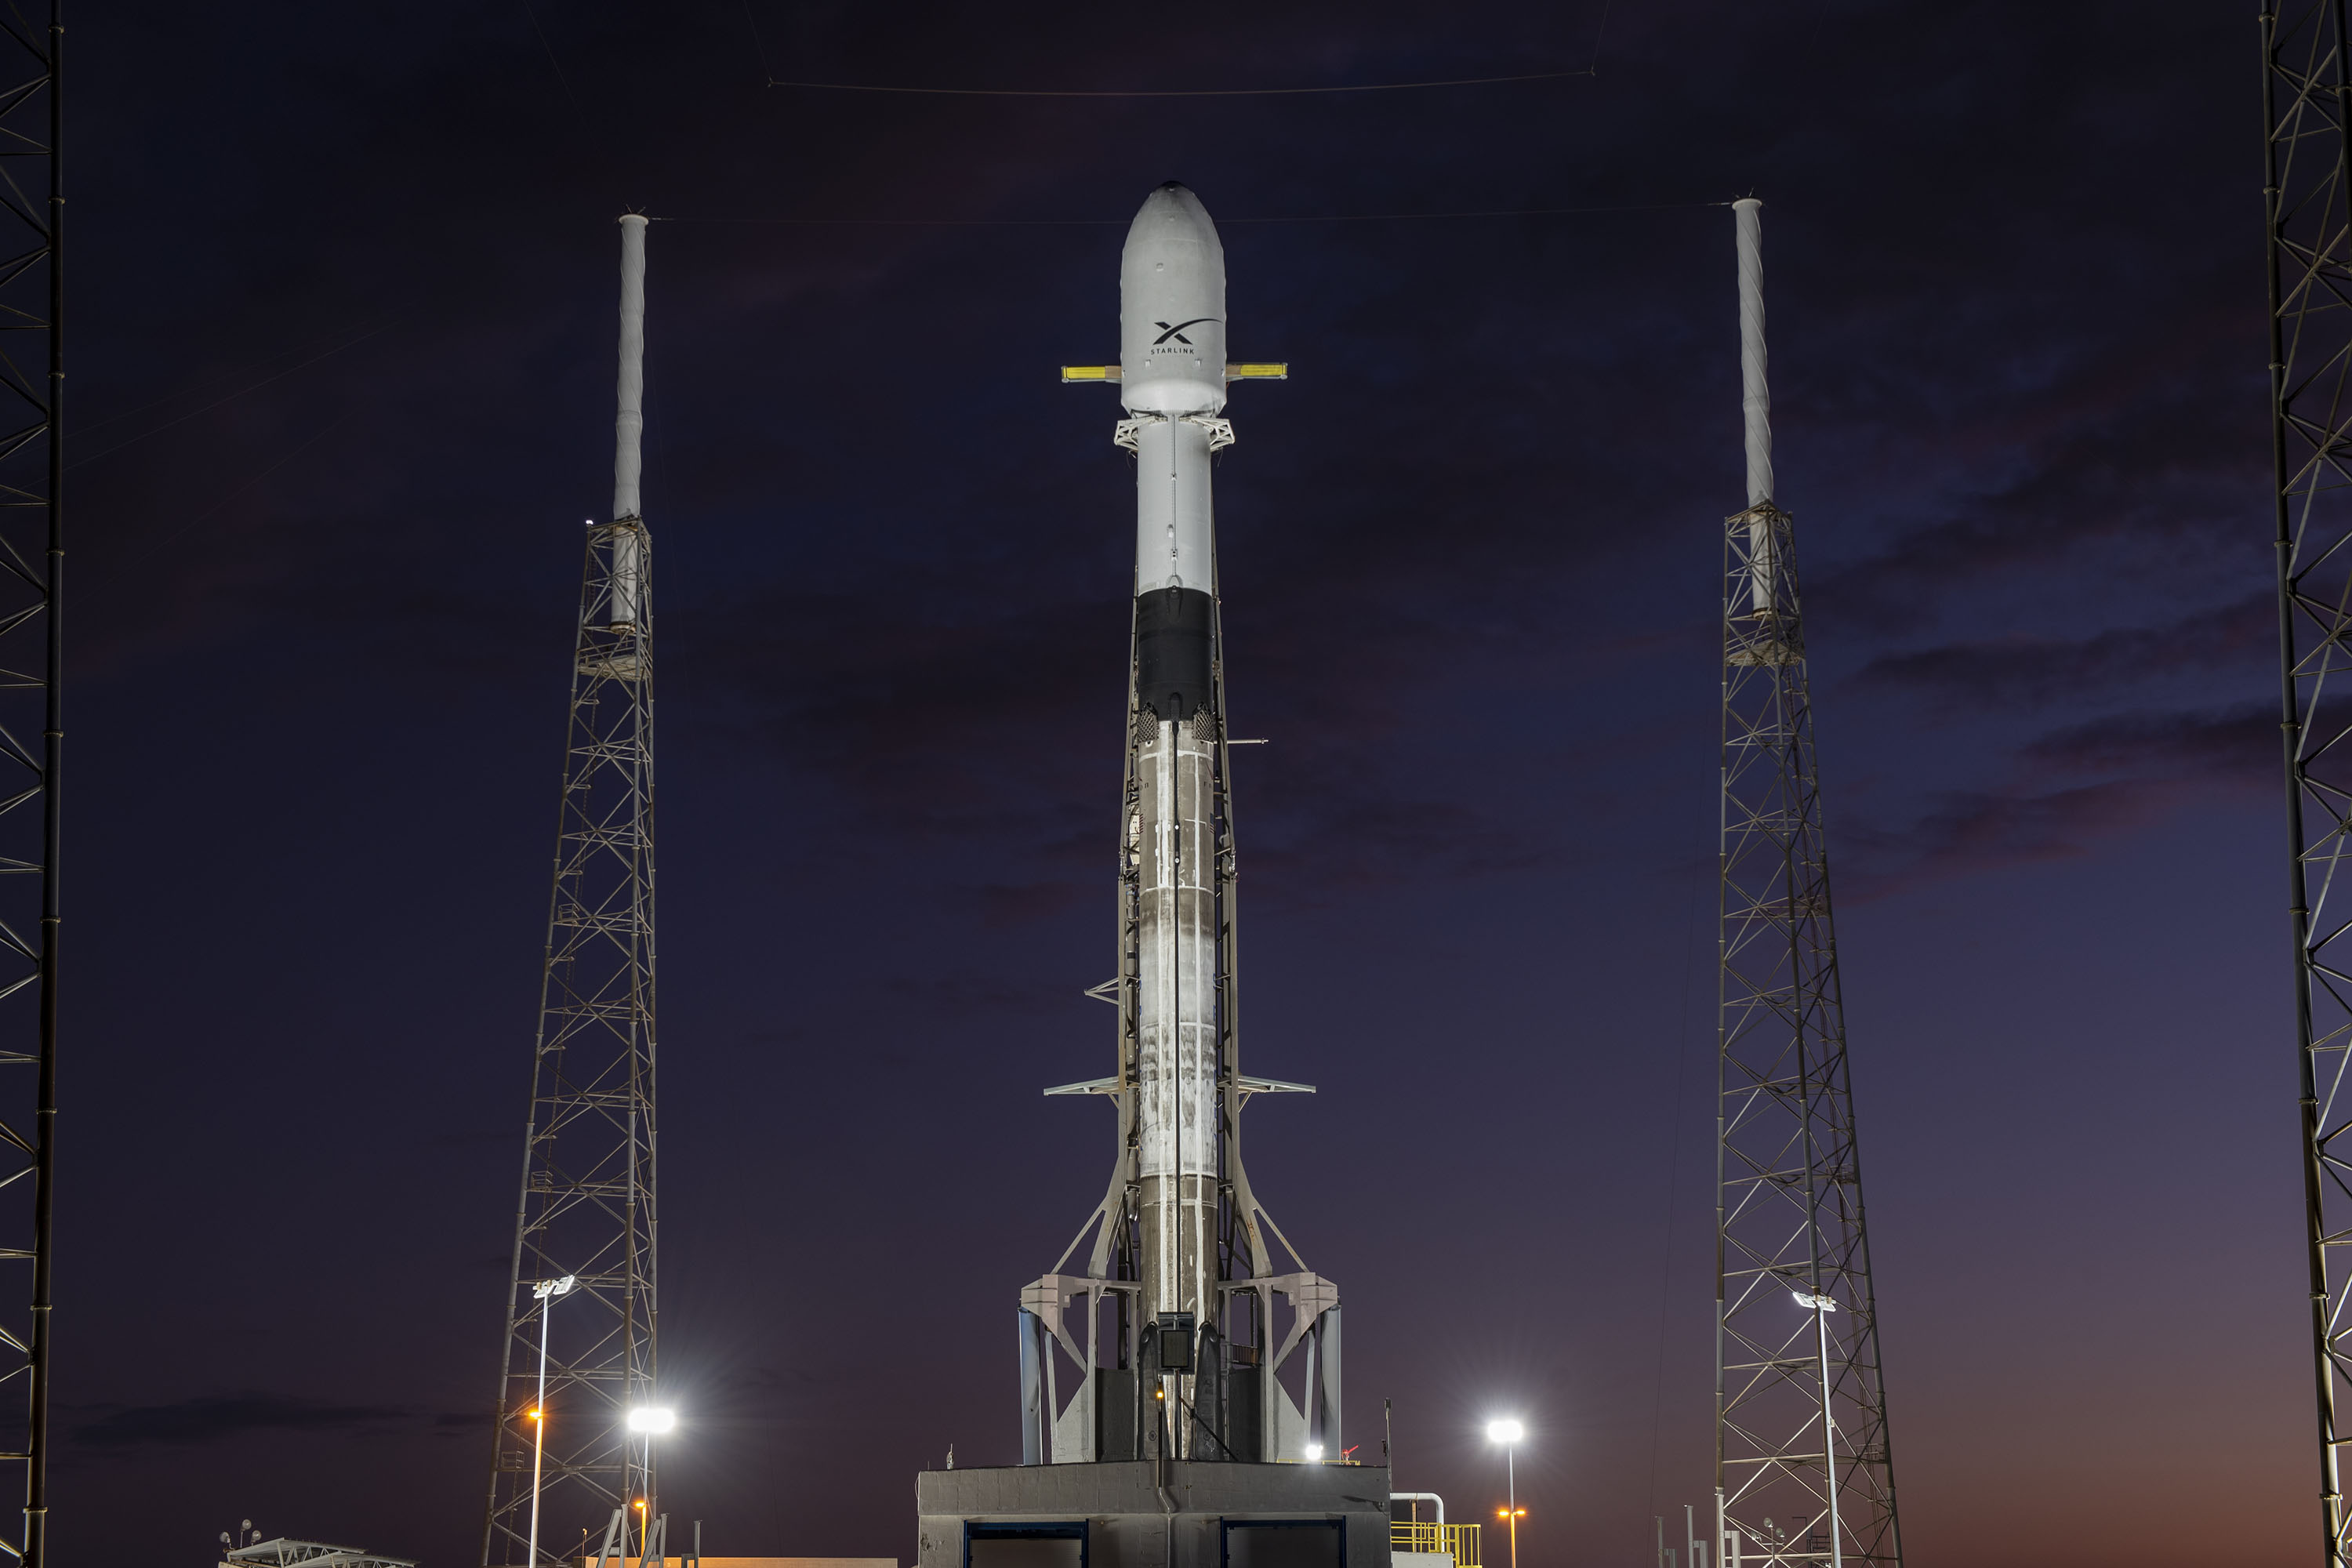 Starlink-1 Falcon 9 B1048 LC-40 vertical 111019 (SpaceX) 1